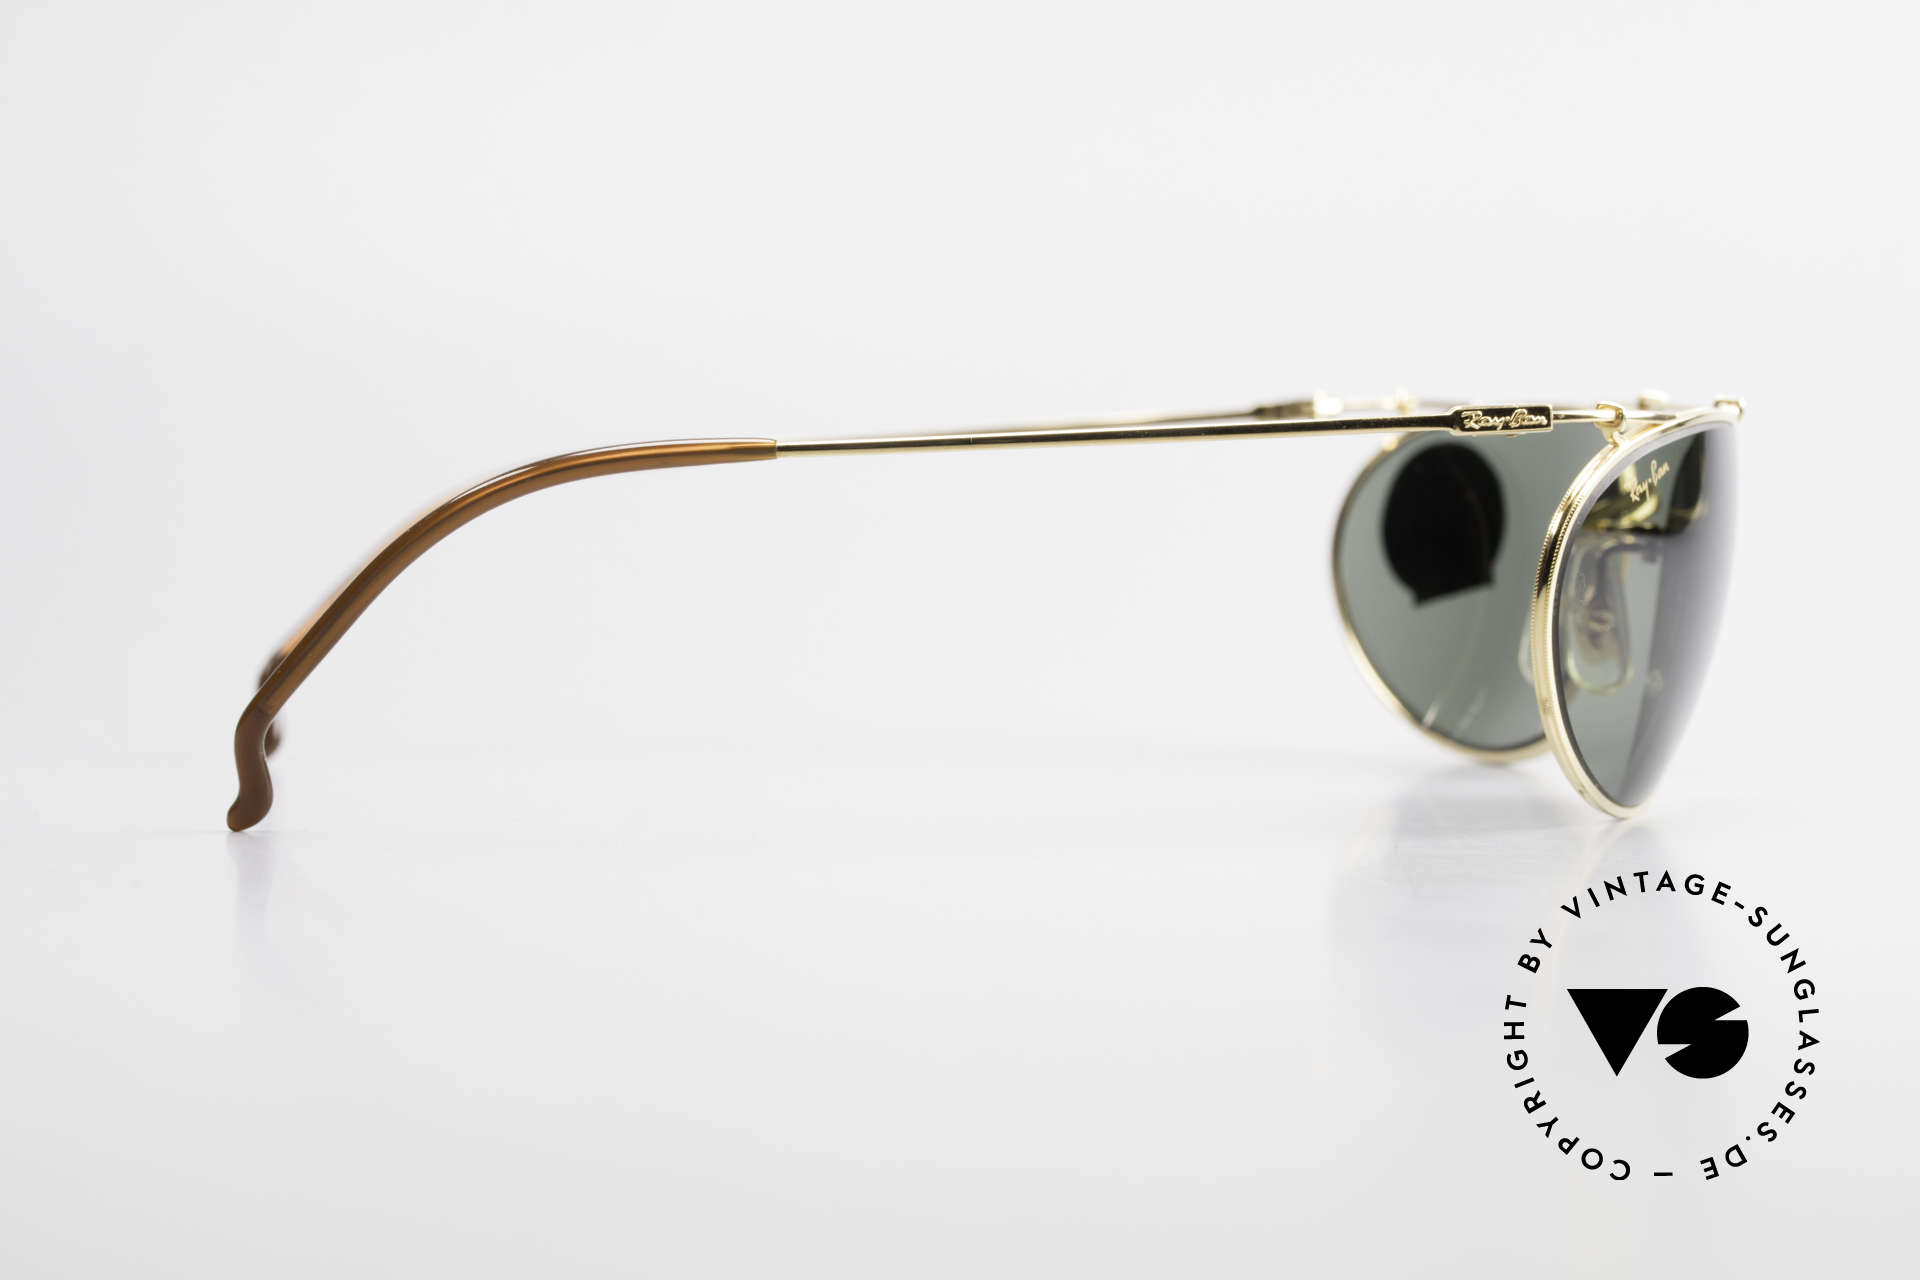 Ray Ban Deco Metals Wrap Old Bausch Lomb Ray-Ban USA, NO RETRO SHADES, but an original by Bausch&Lomb, Made for Men and Women